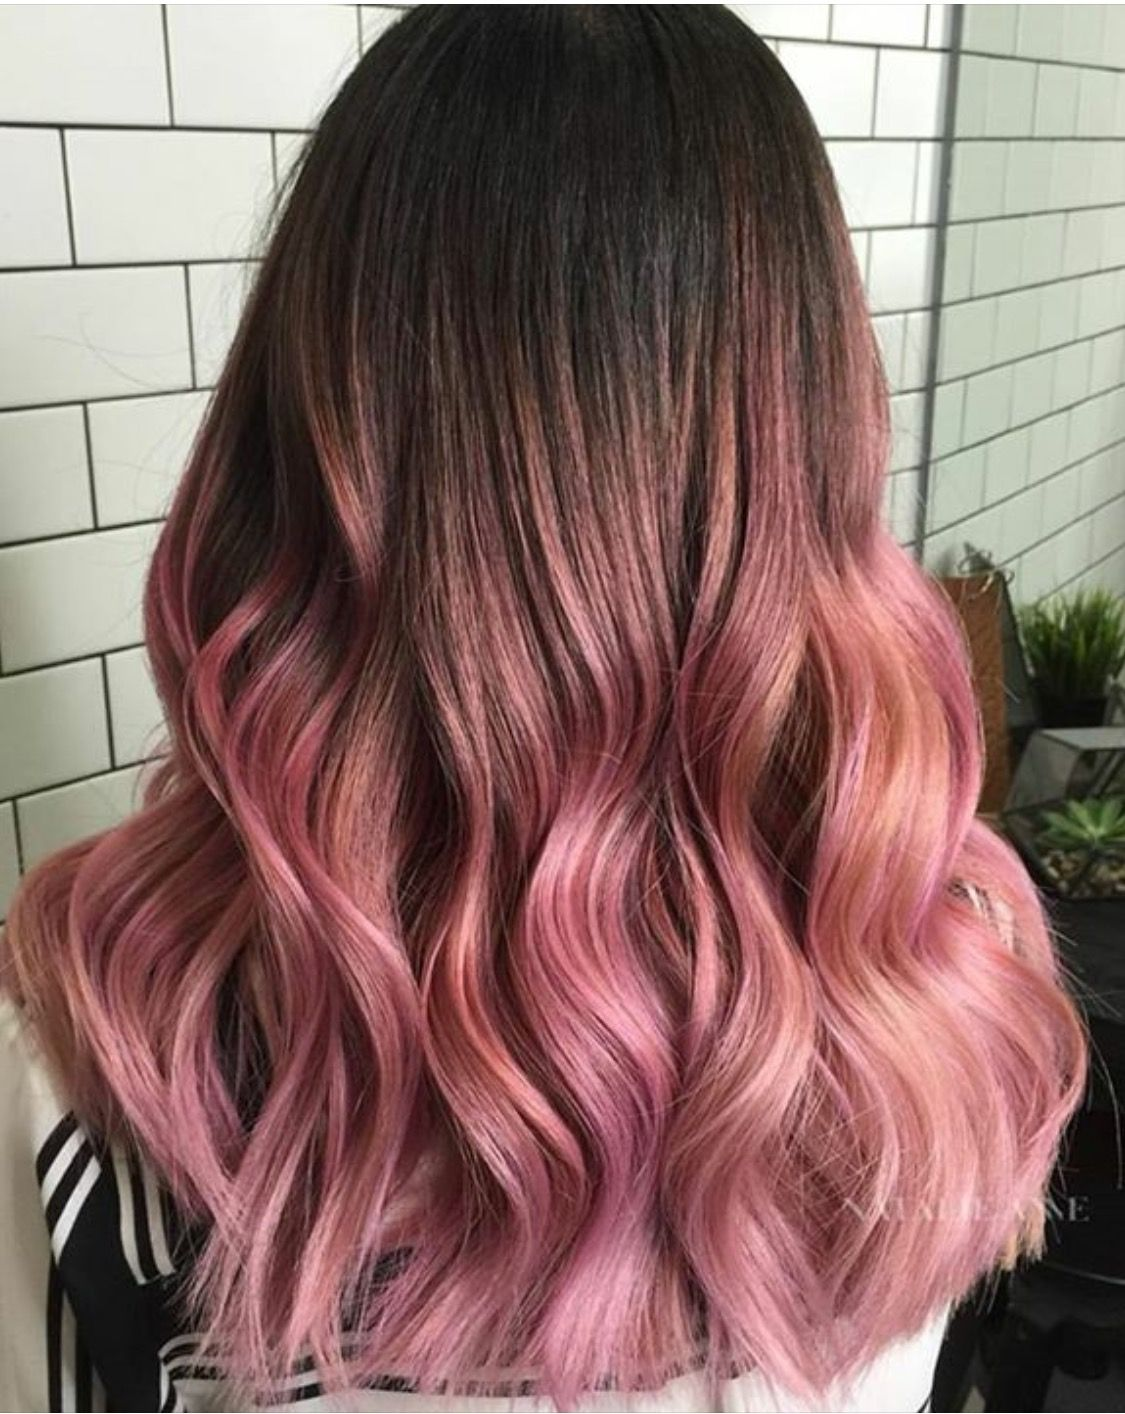 Pin By Shiloh Wright On Hair Inspo Hair Dye Tips Hair Styles Pastel Pink Hair